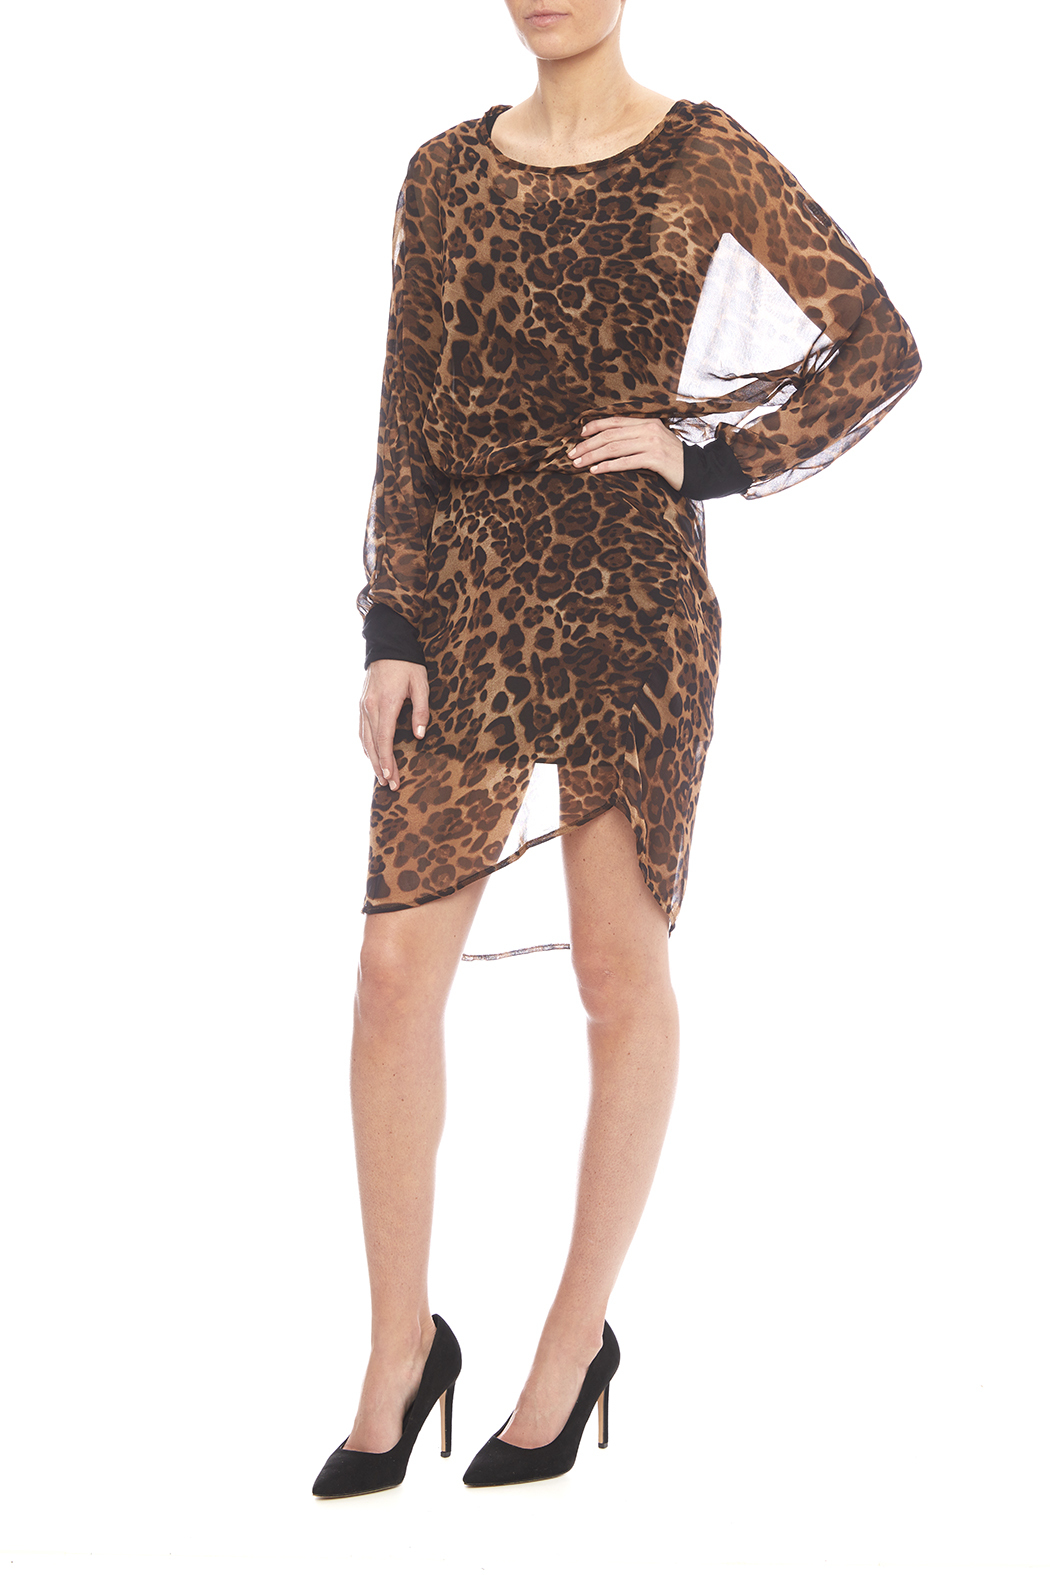 NU New York Chiffon Leopard Dress - Front Full Image